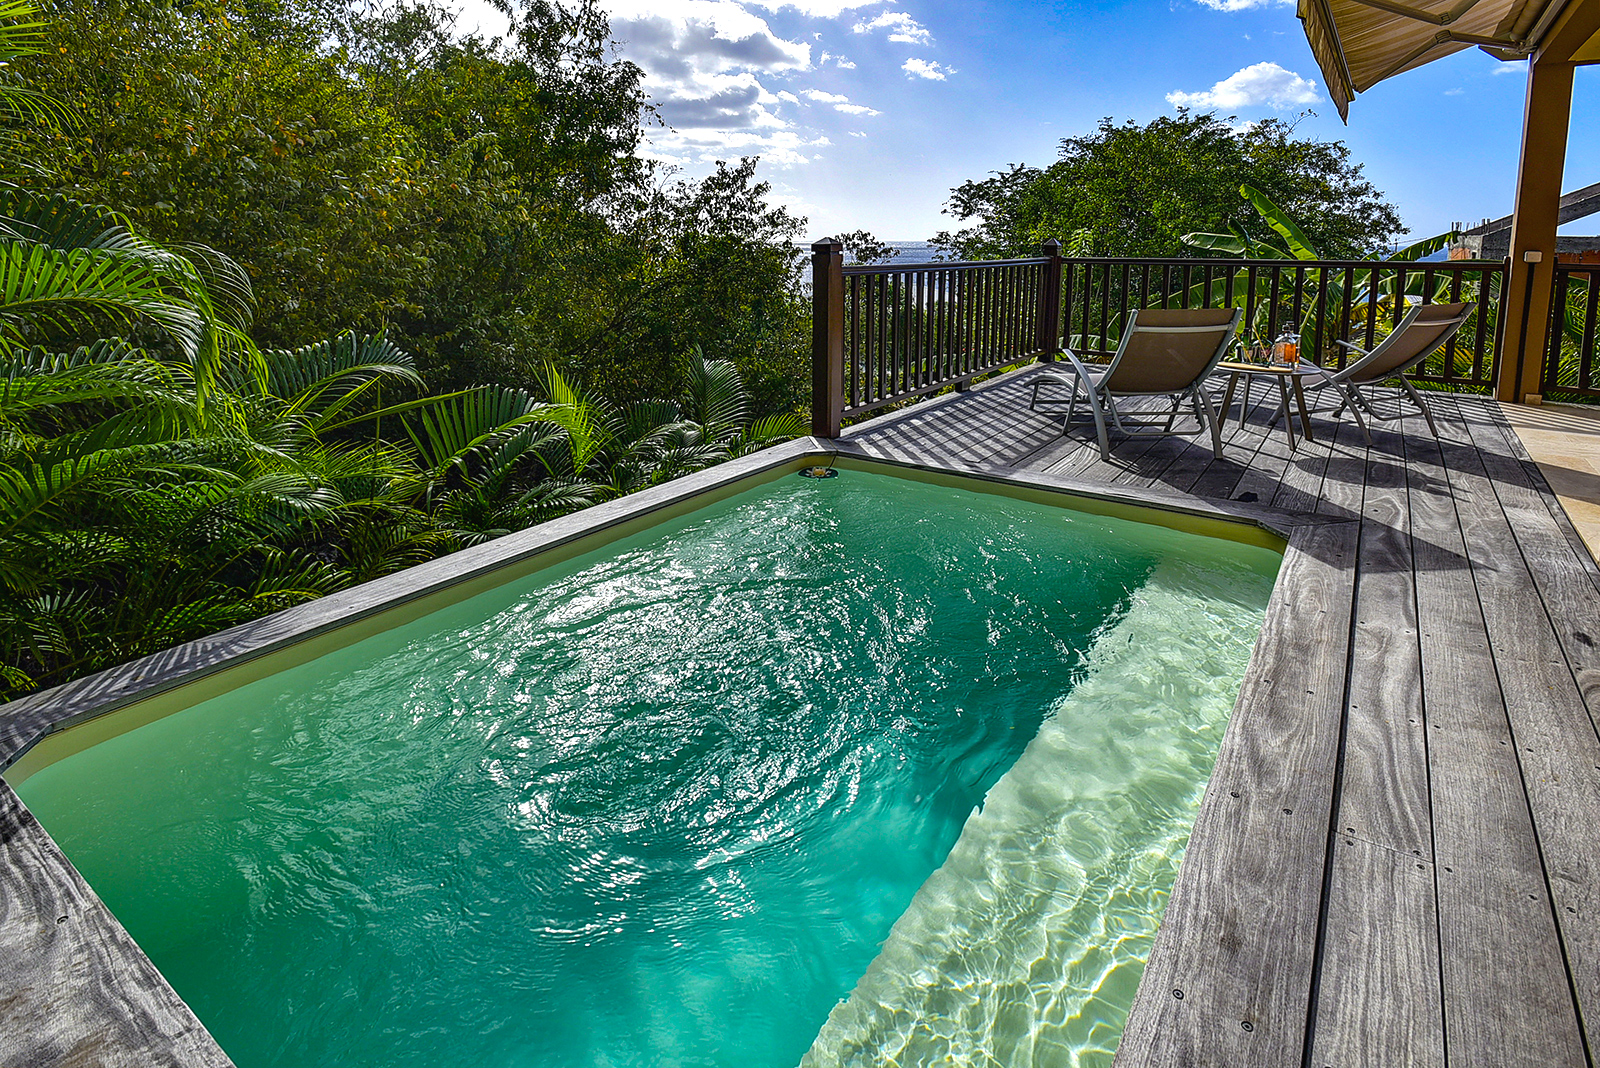 Tribord & Babord - Locations piscine  Babord anse arlet martinique